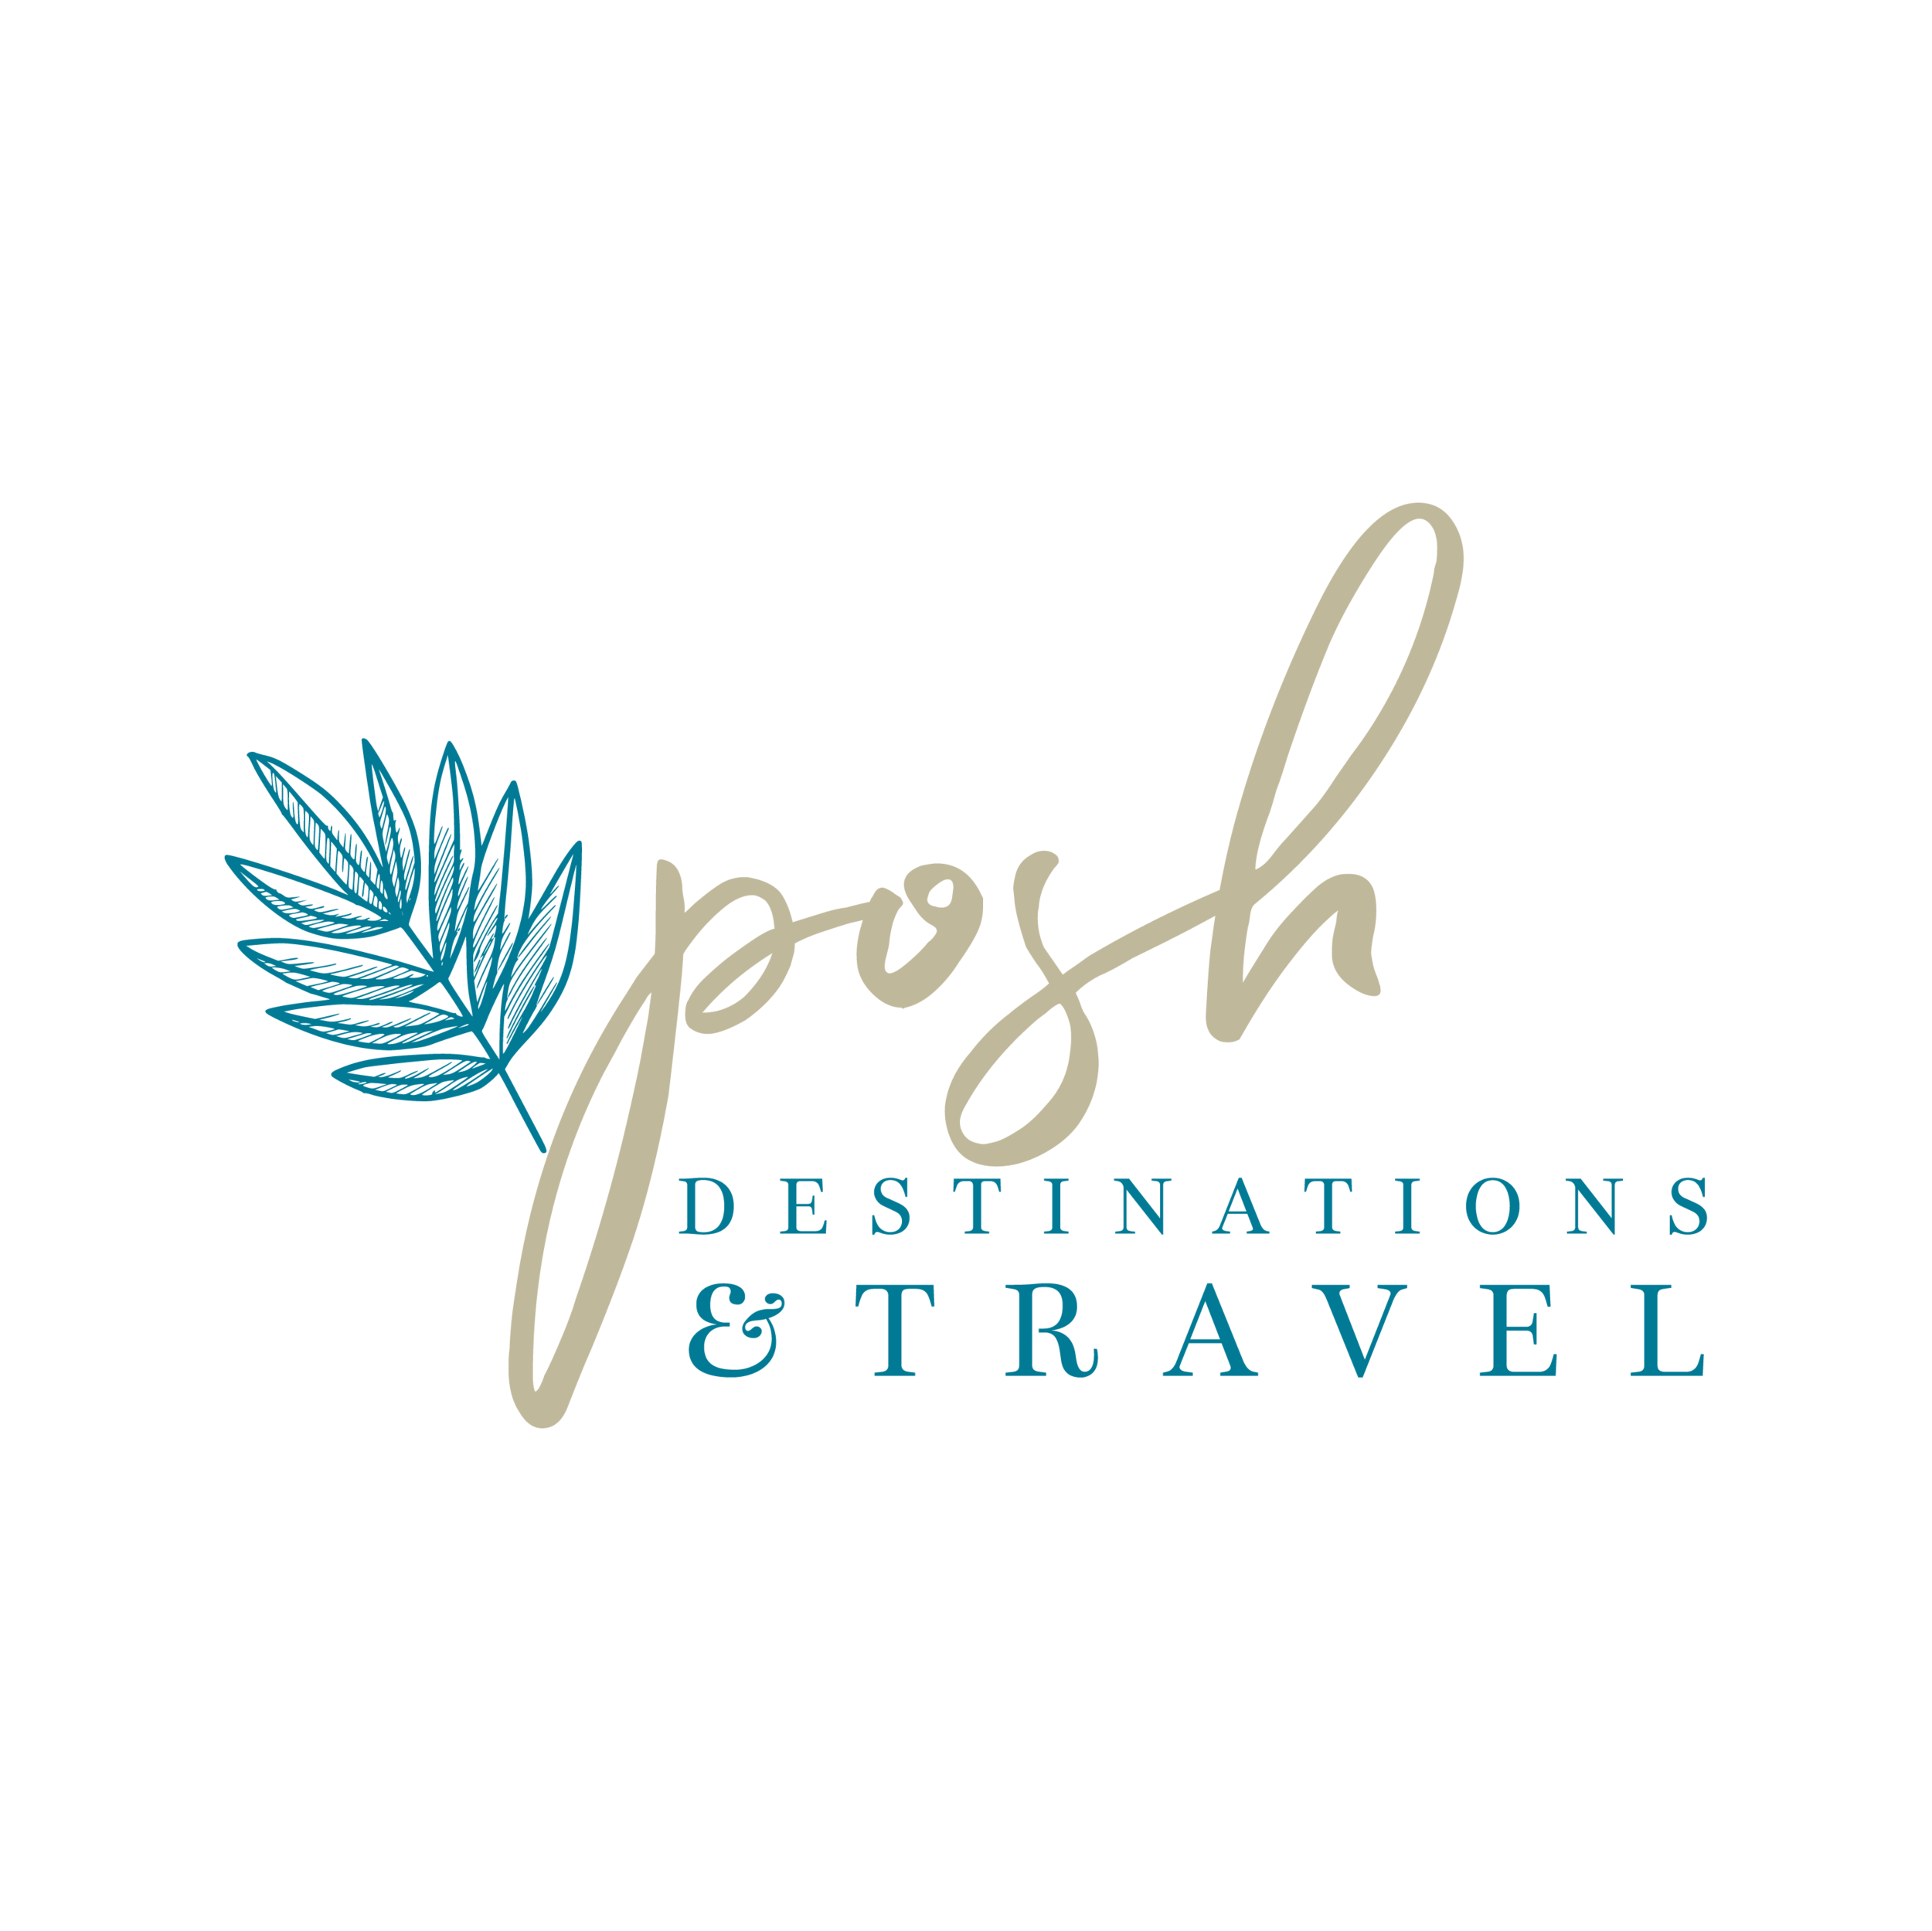 Posh Destinations & Travel - Logo_MAIN LOGO - SQUARE.png